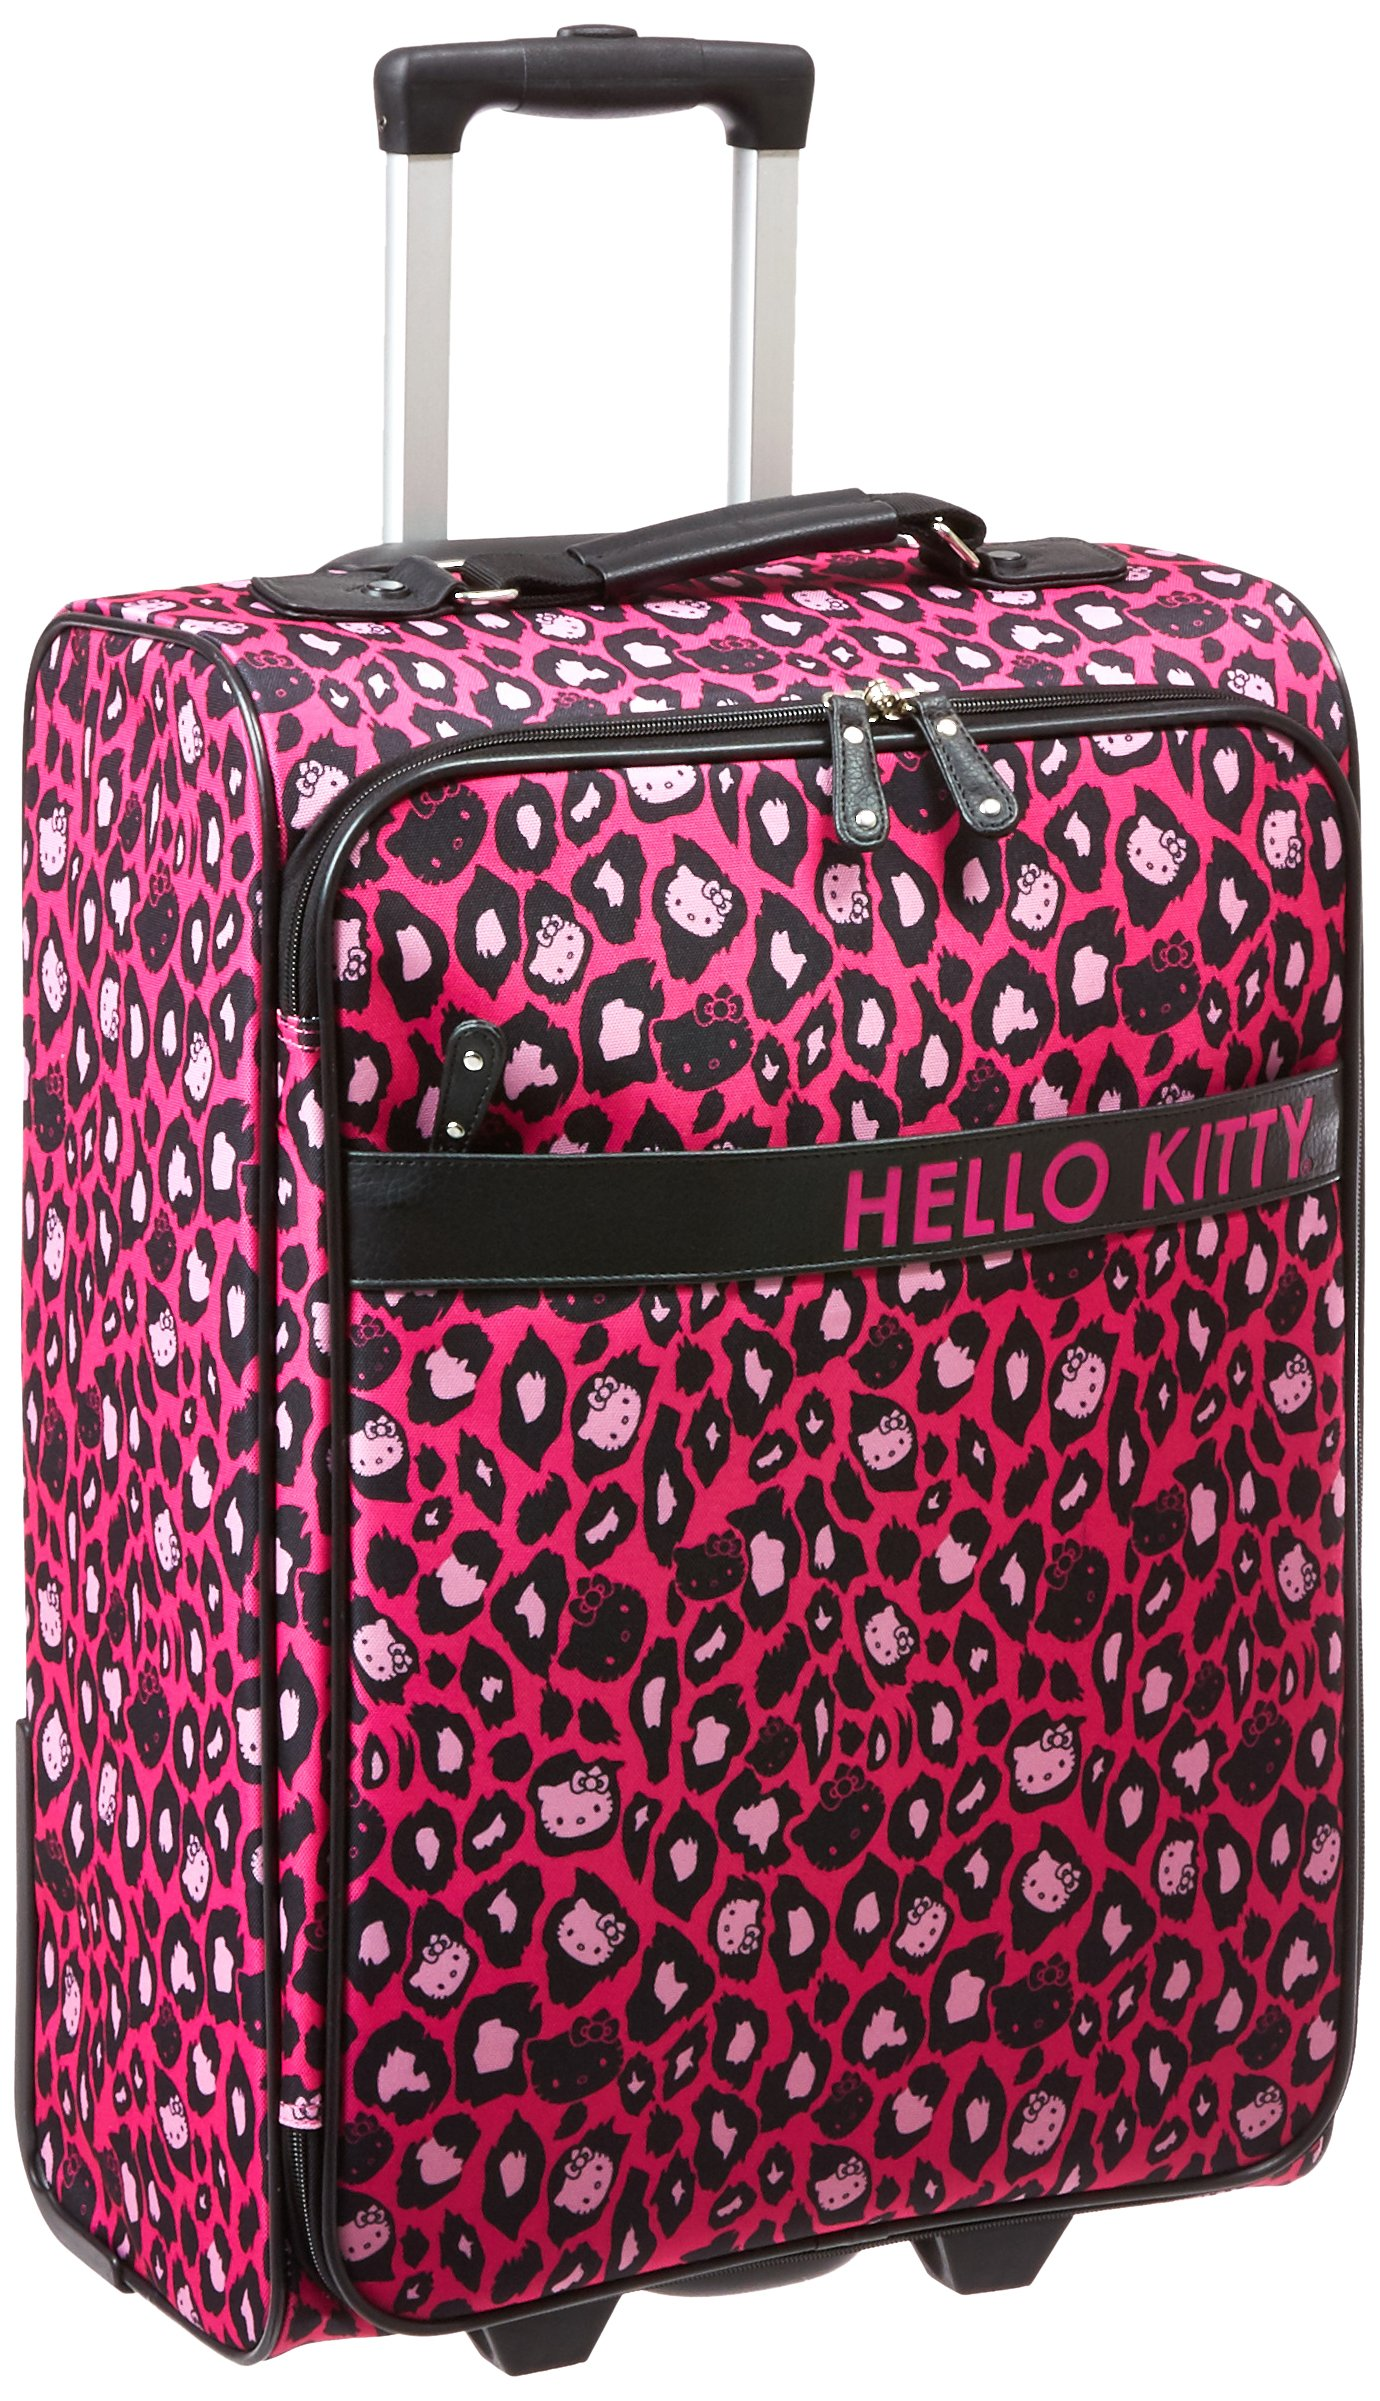 Hello Kitty Leopard Rolling Suitcase, Multi, One Size by Hello Kitty